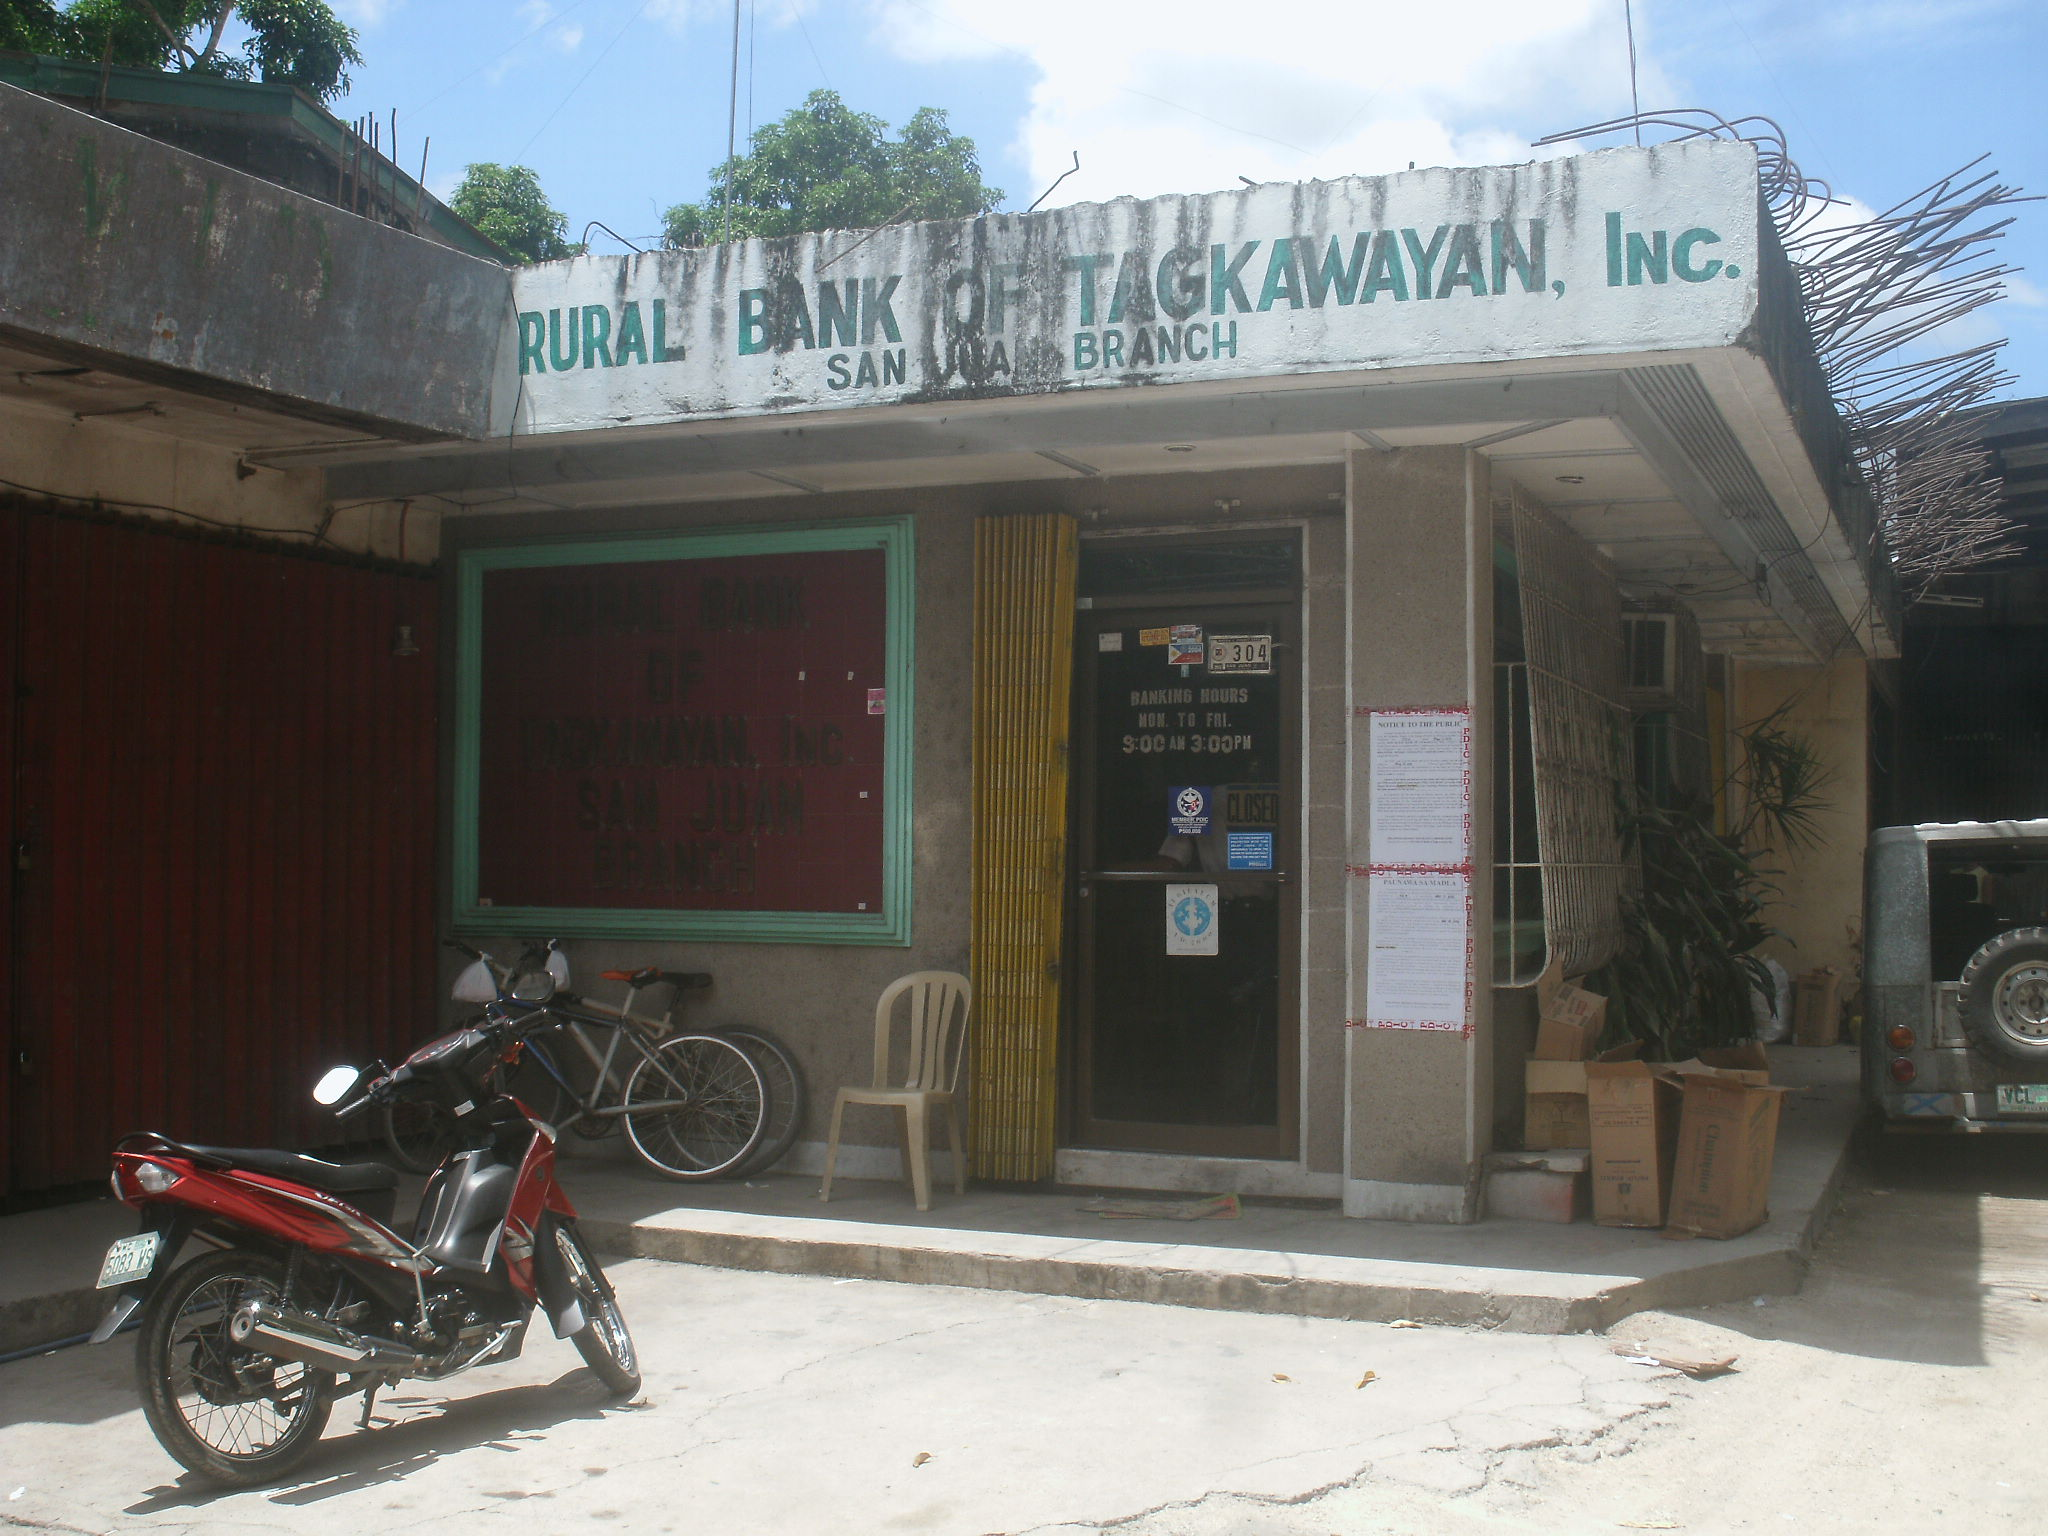 A rural bank in Southern Tagalog region that has recently been closed